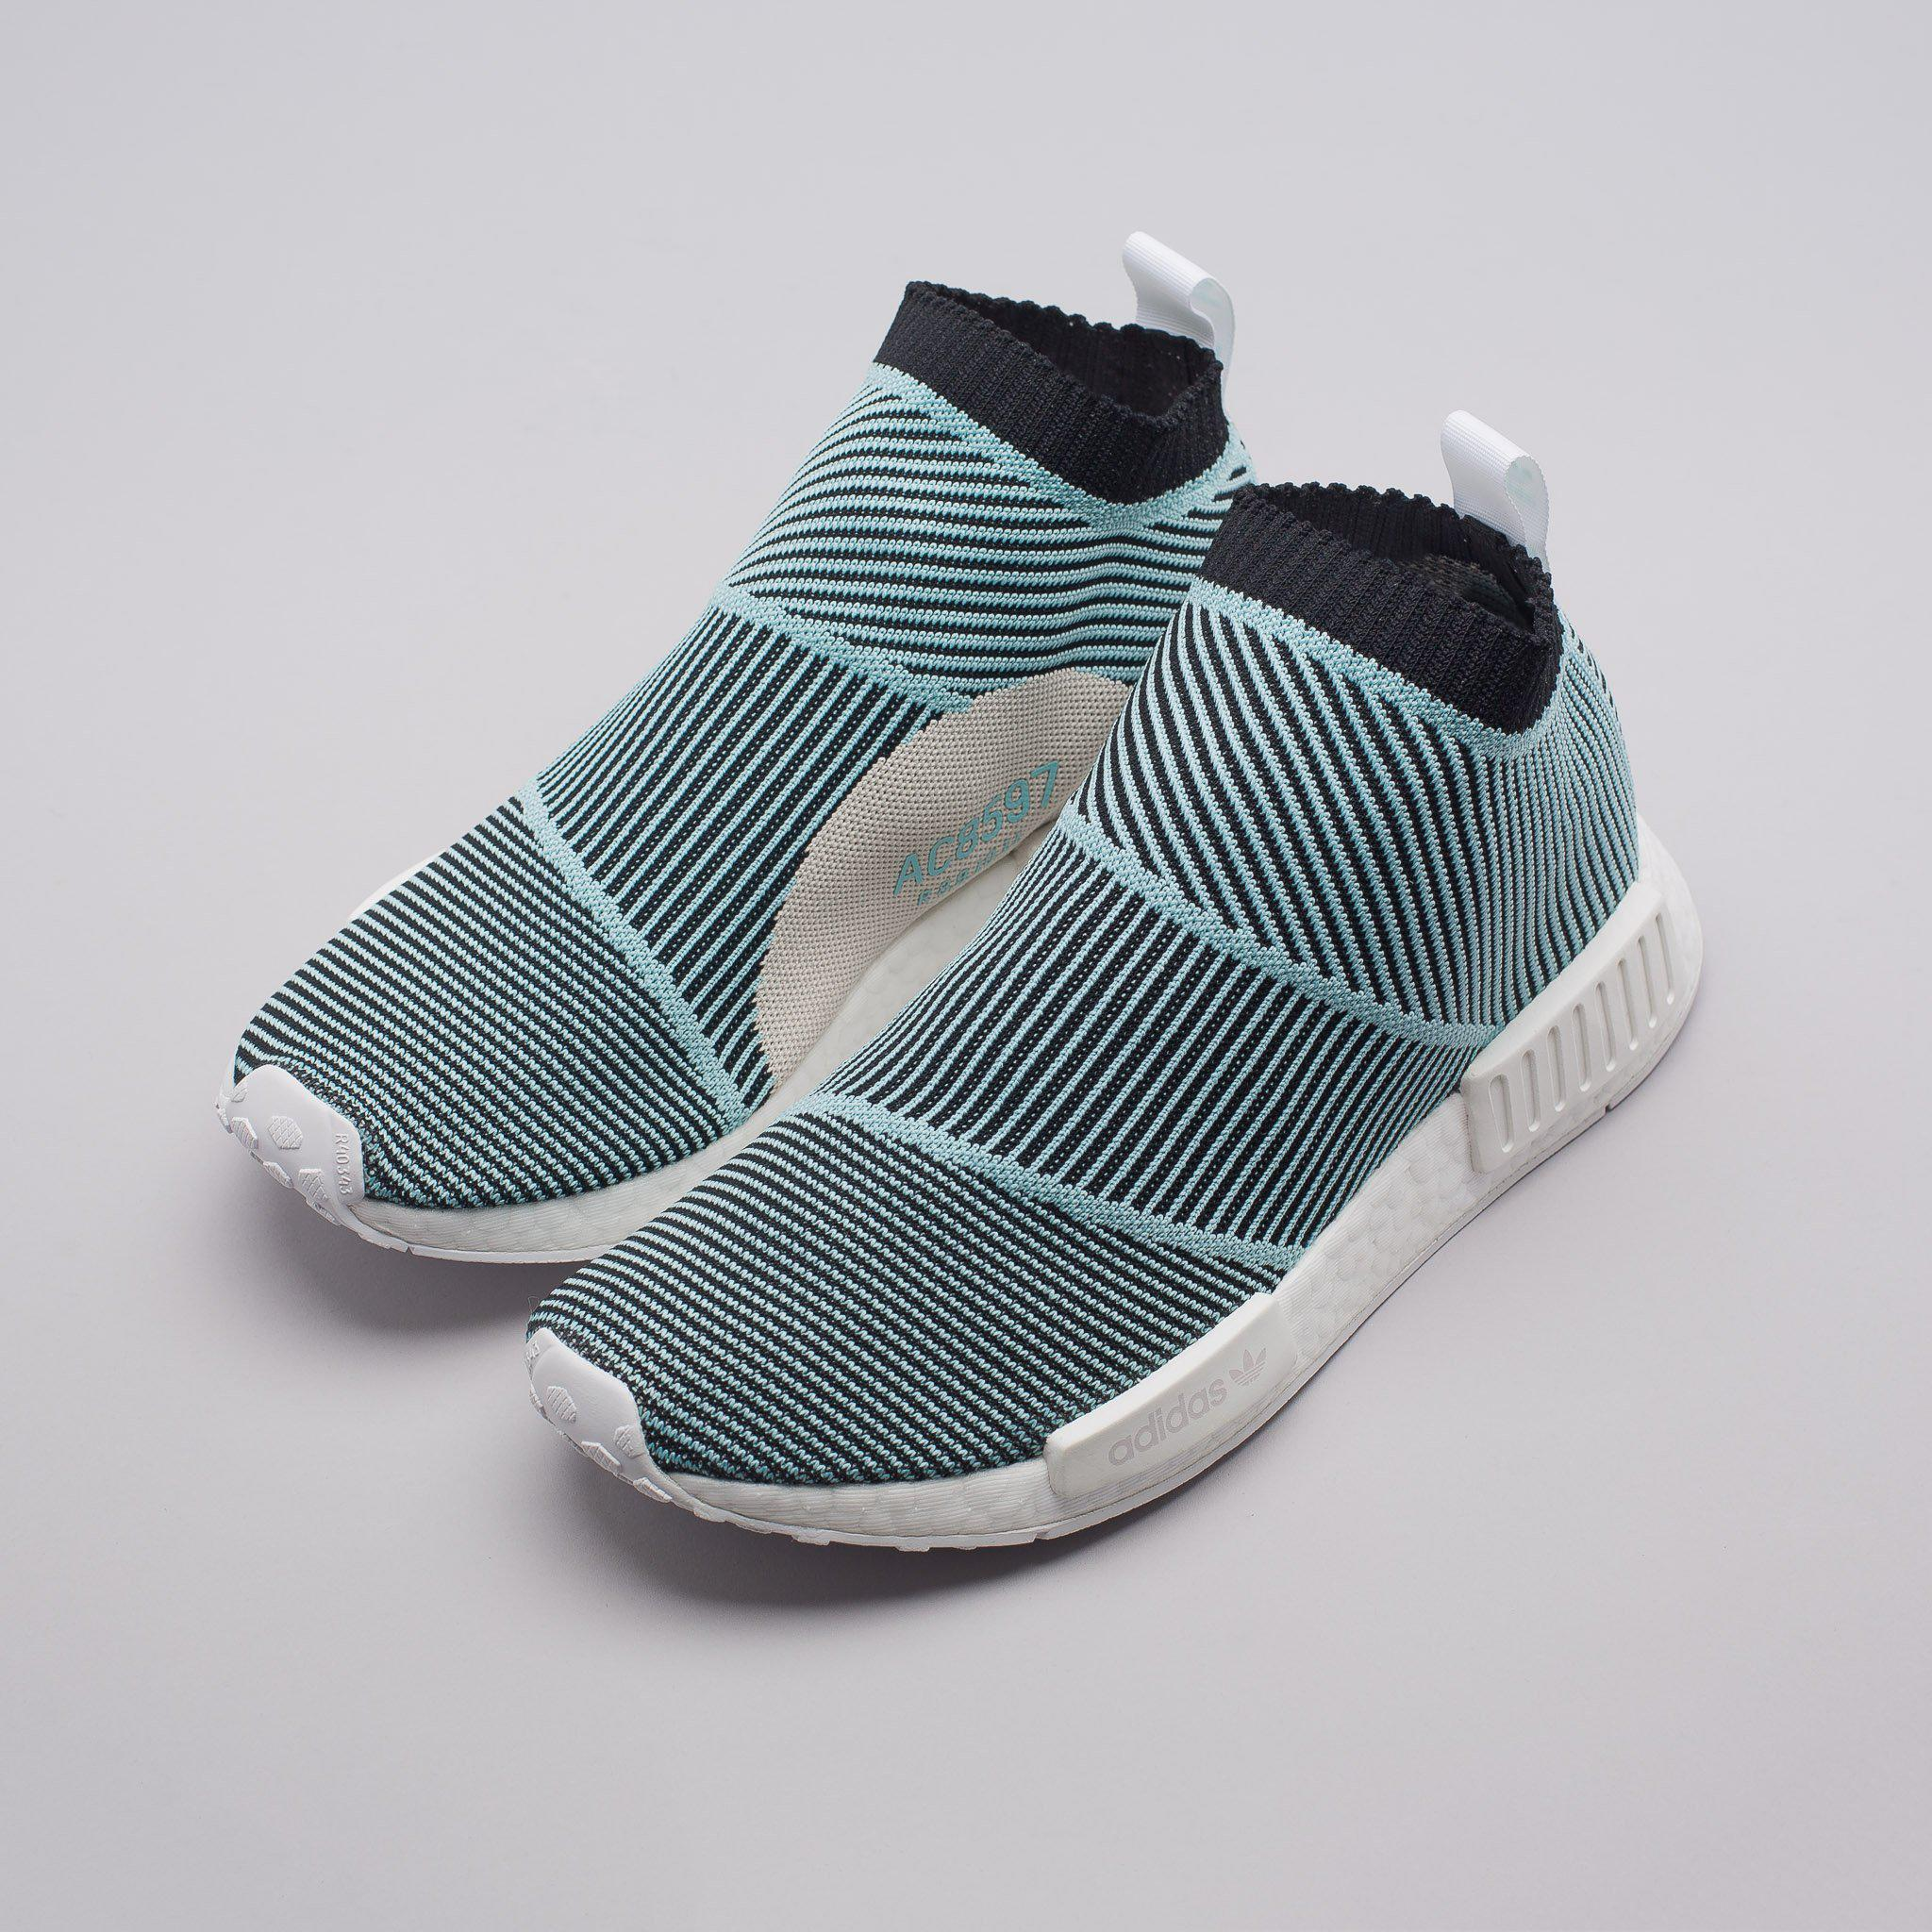 4f5f28028 Lyst - adidas Nmd Cs1 Parley Primeknit In Core Black blue in Blue ...